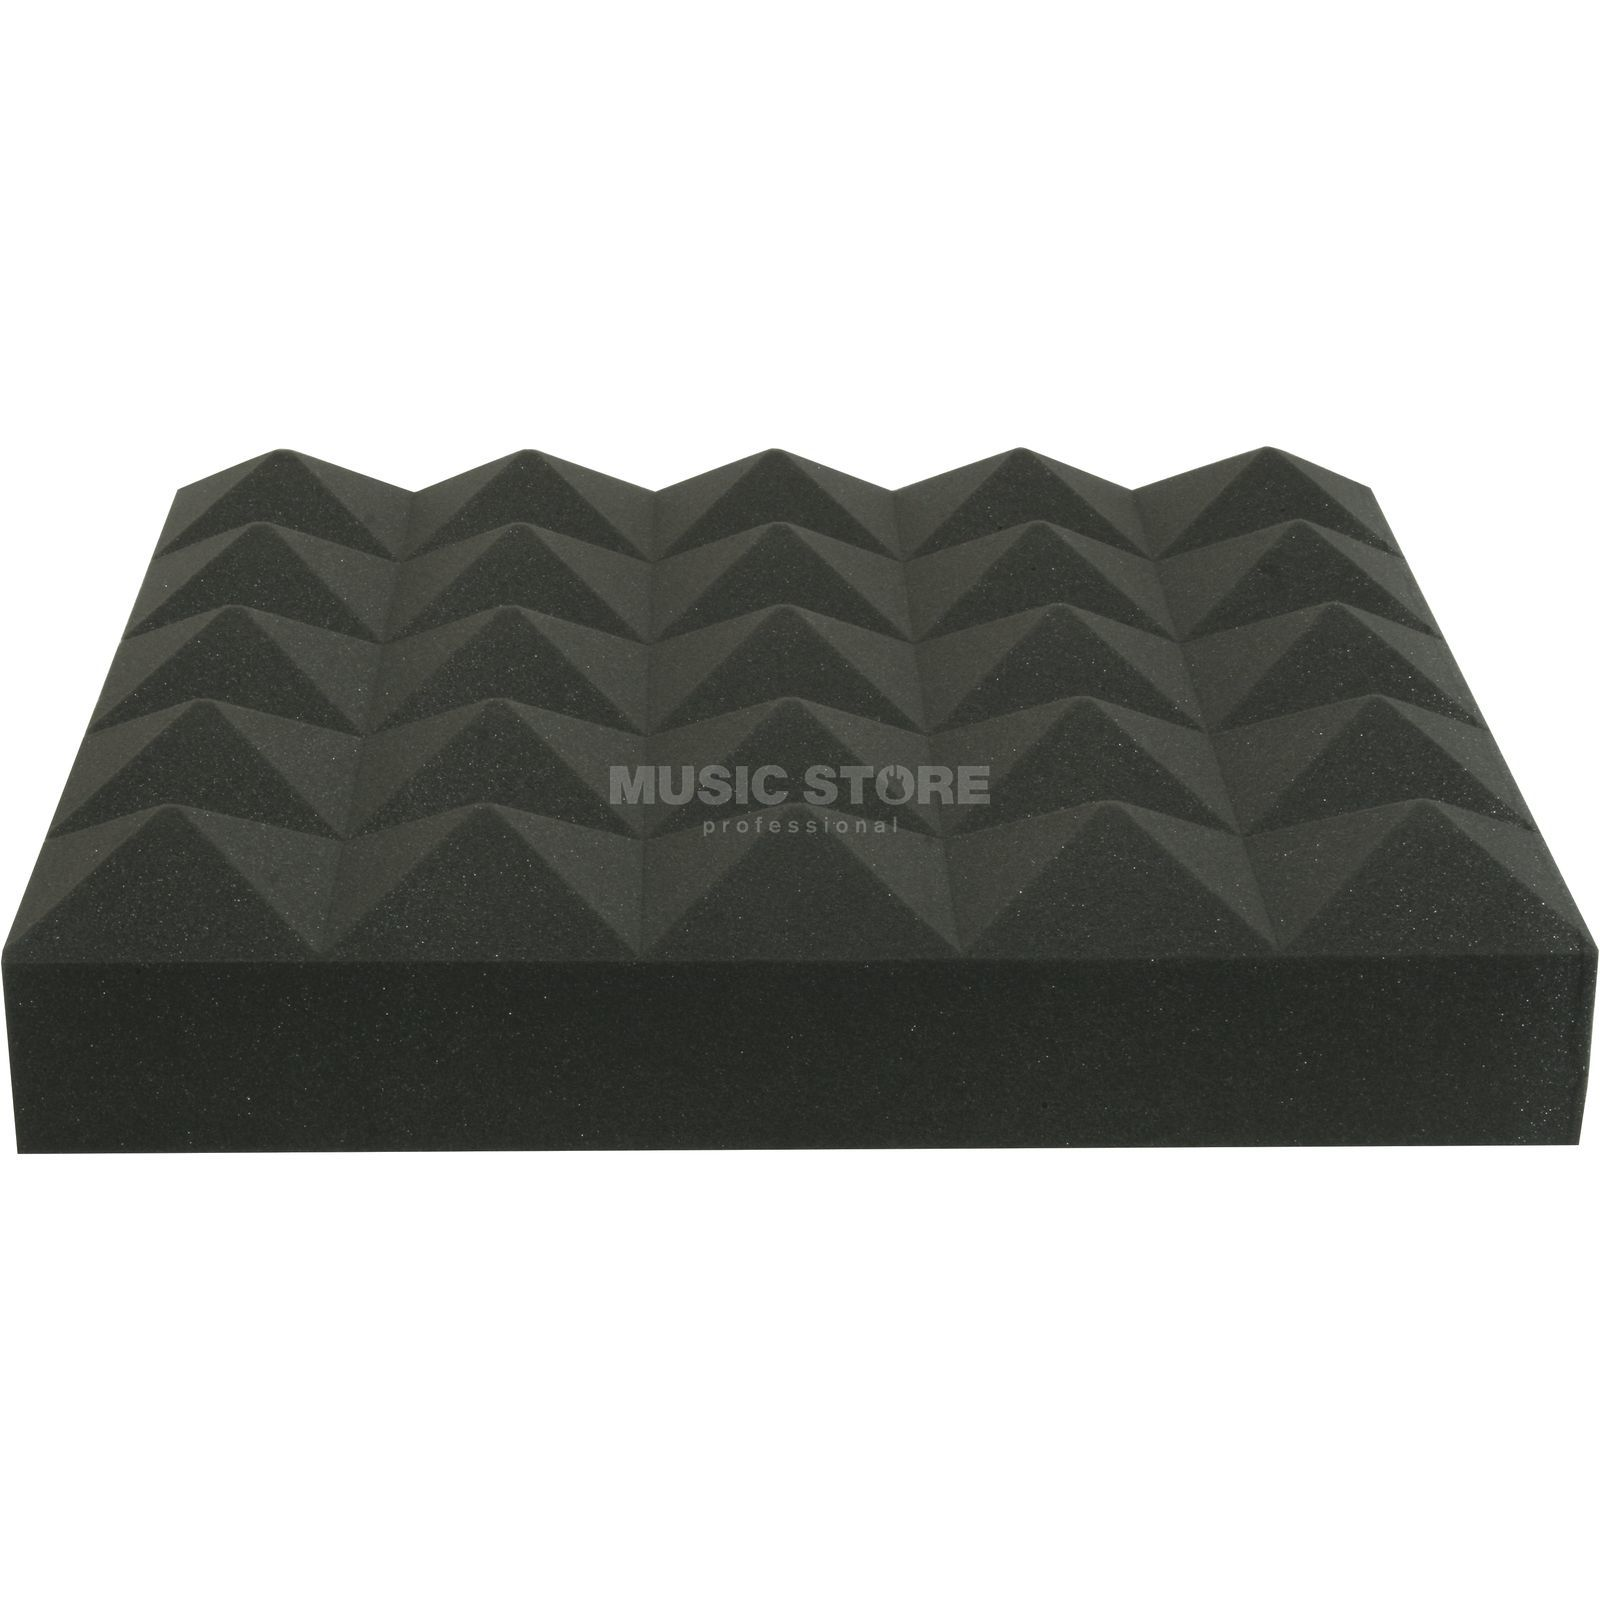 MUSIC STORE Absorber-Set Big, anthracite 600x600x120 Produktbillede